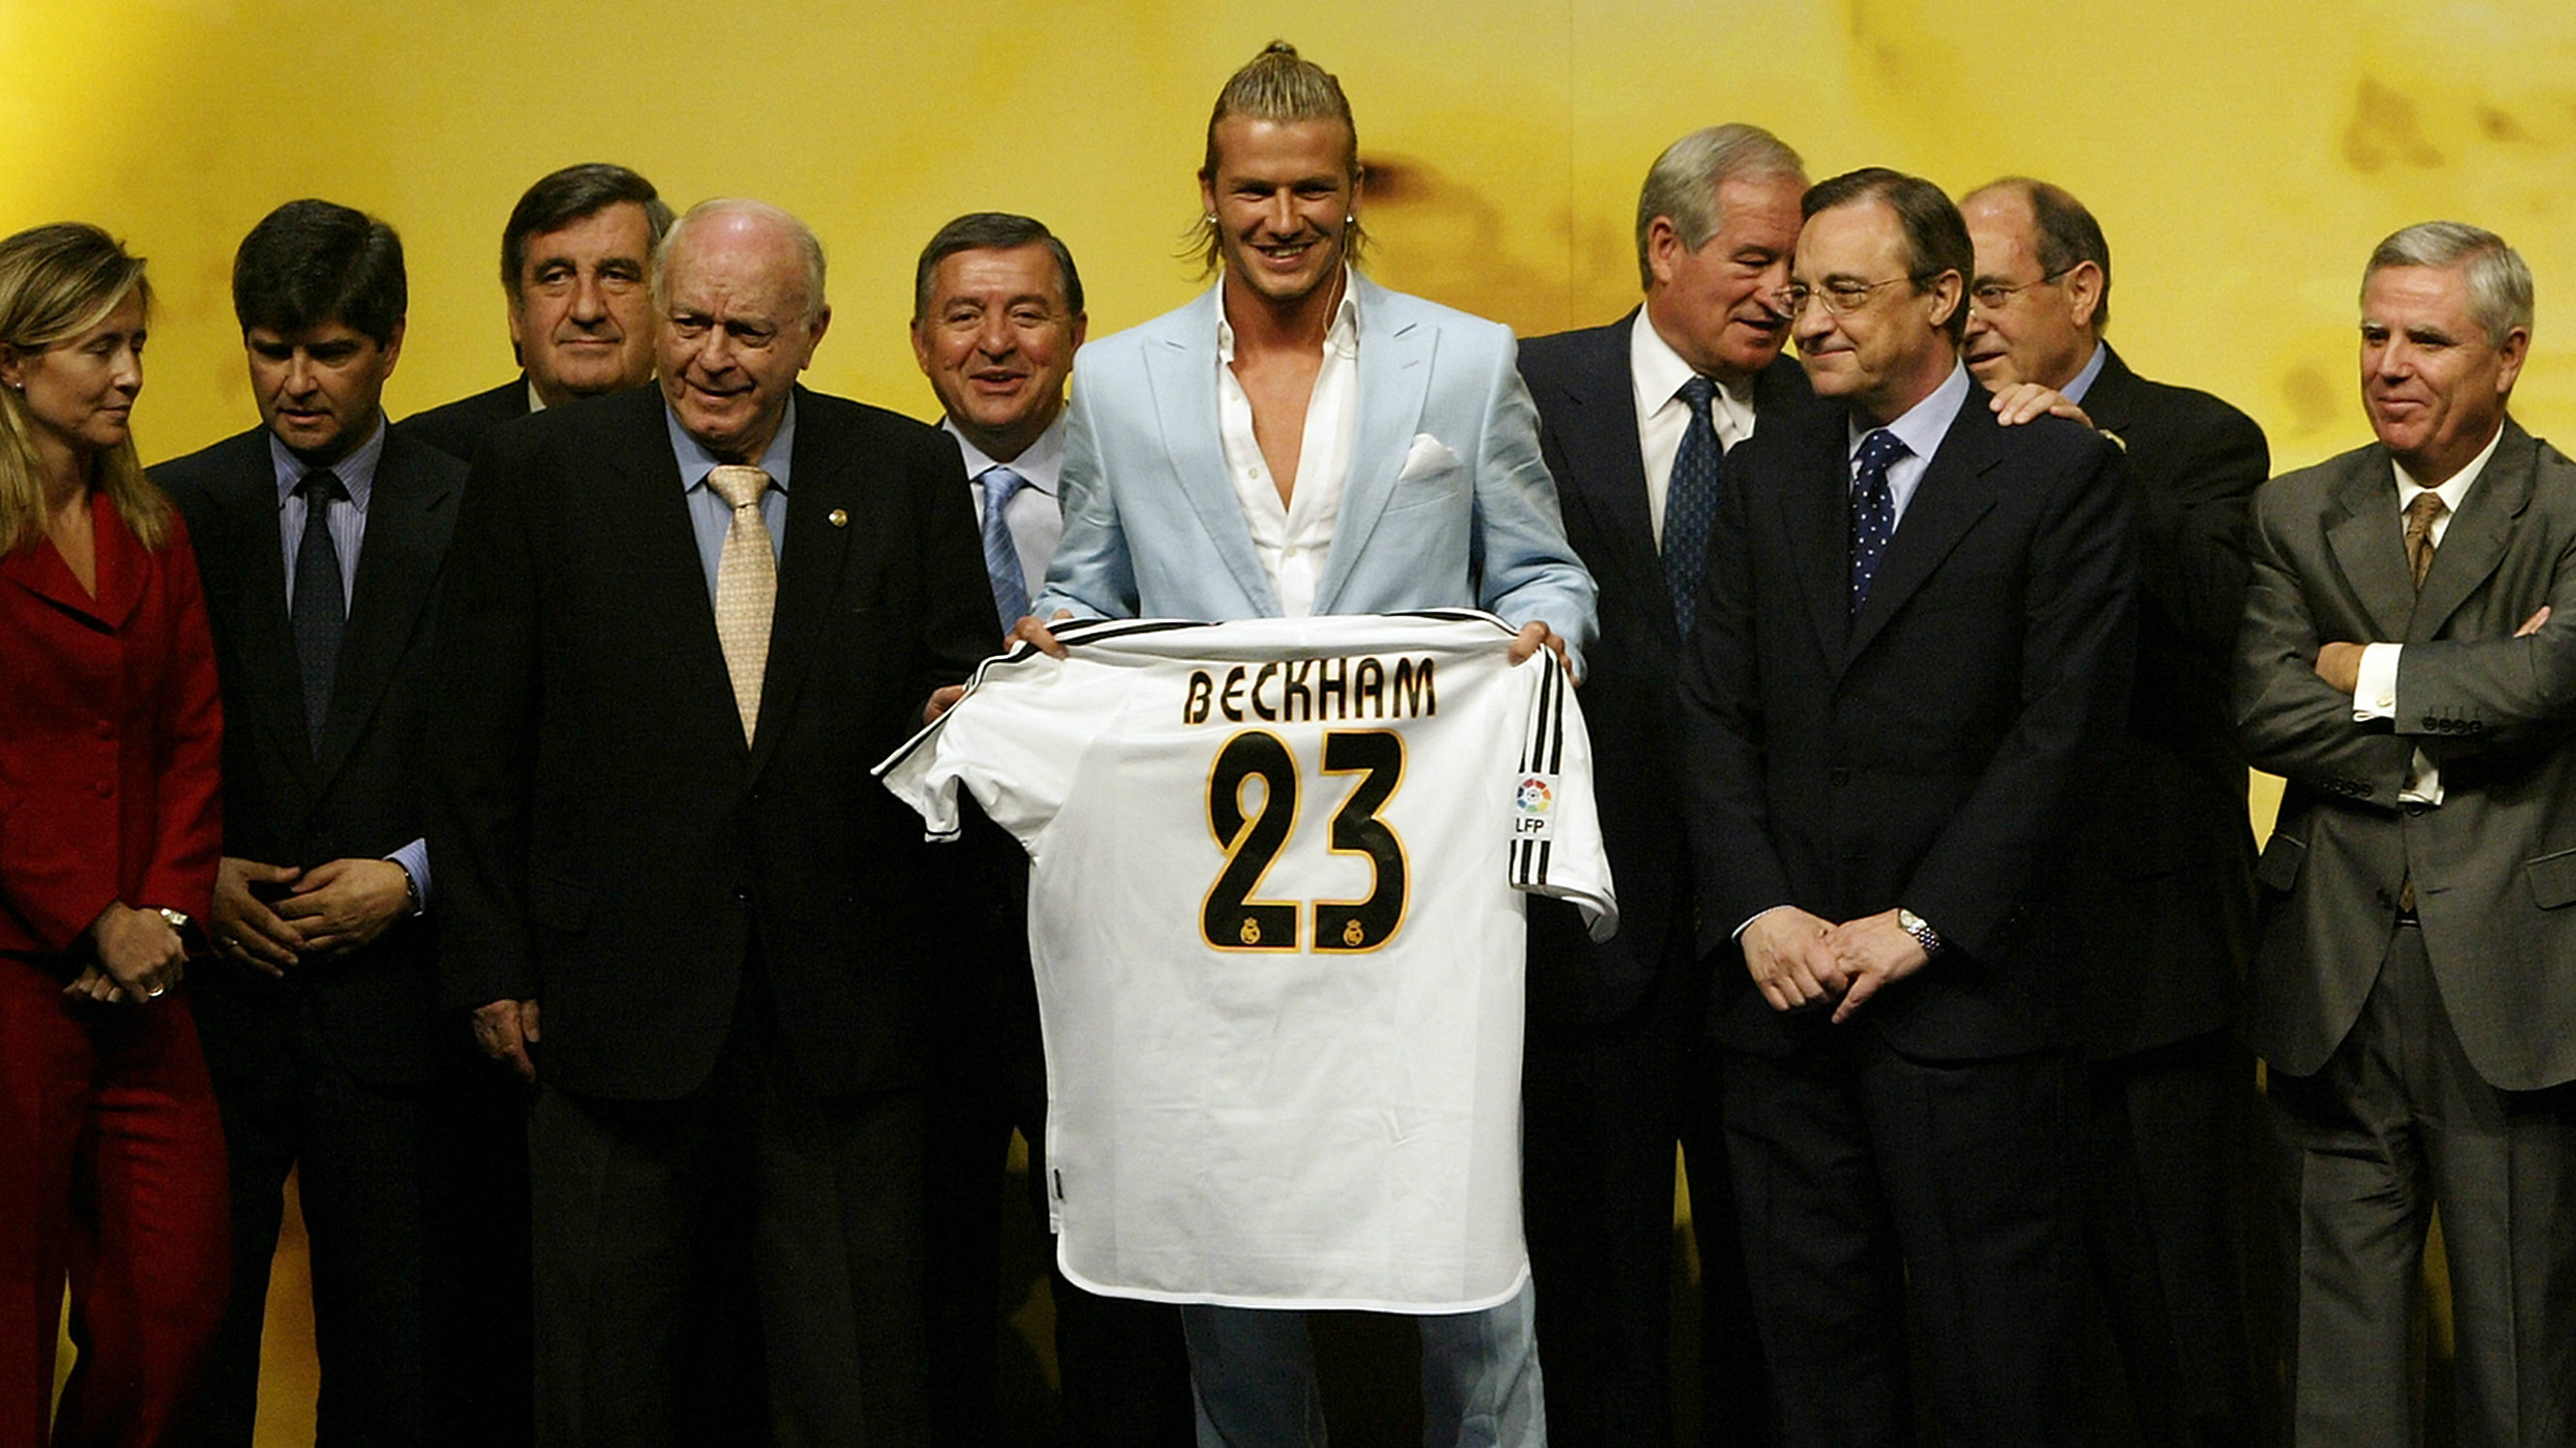 David Beckham Real Madrid official unveiling press conference 2003